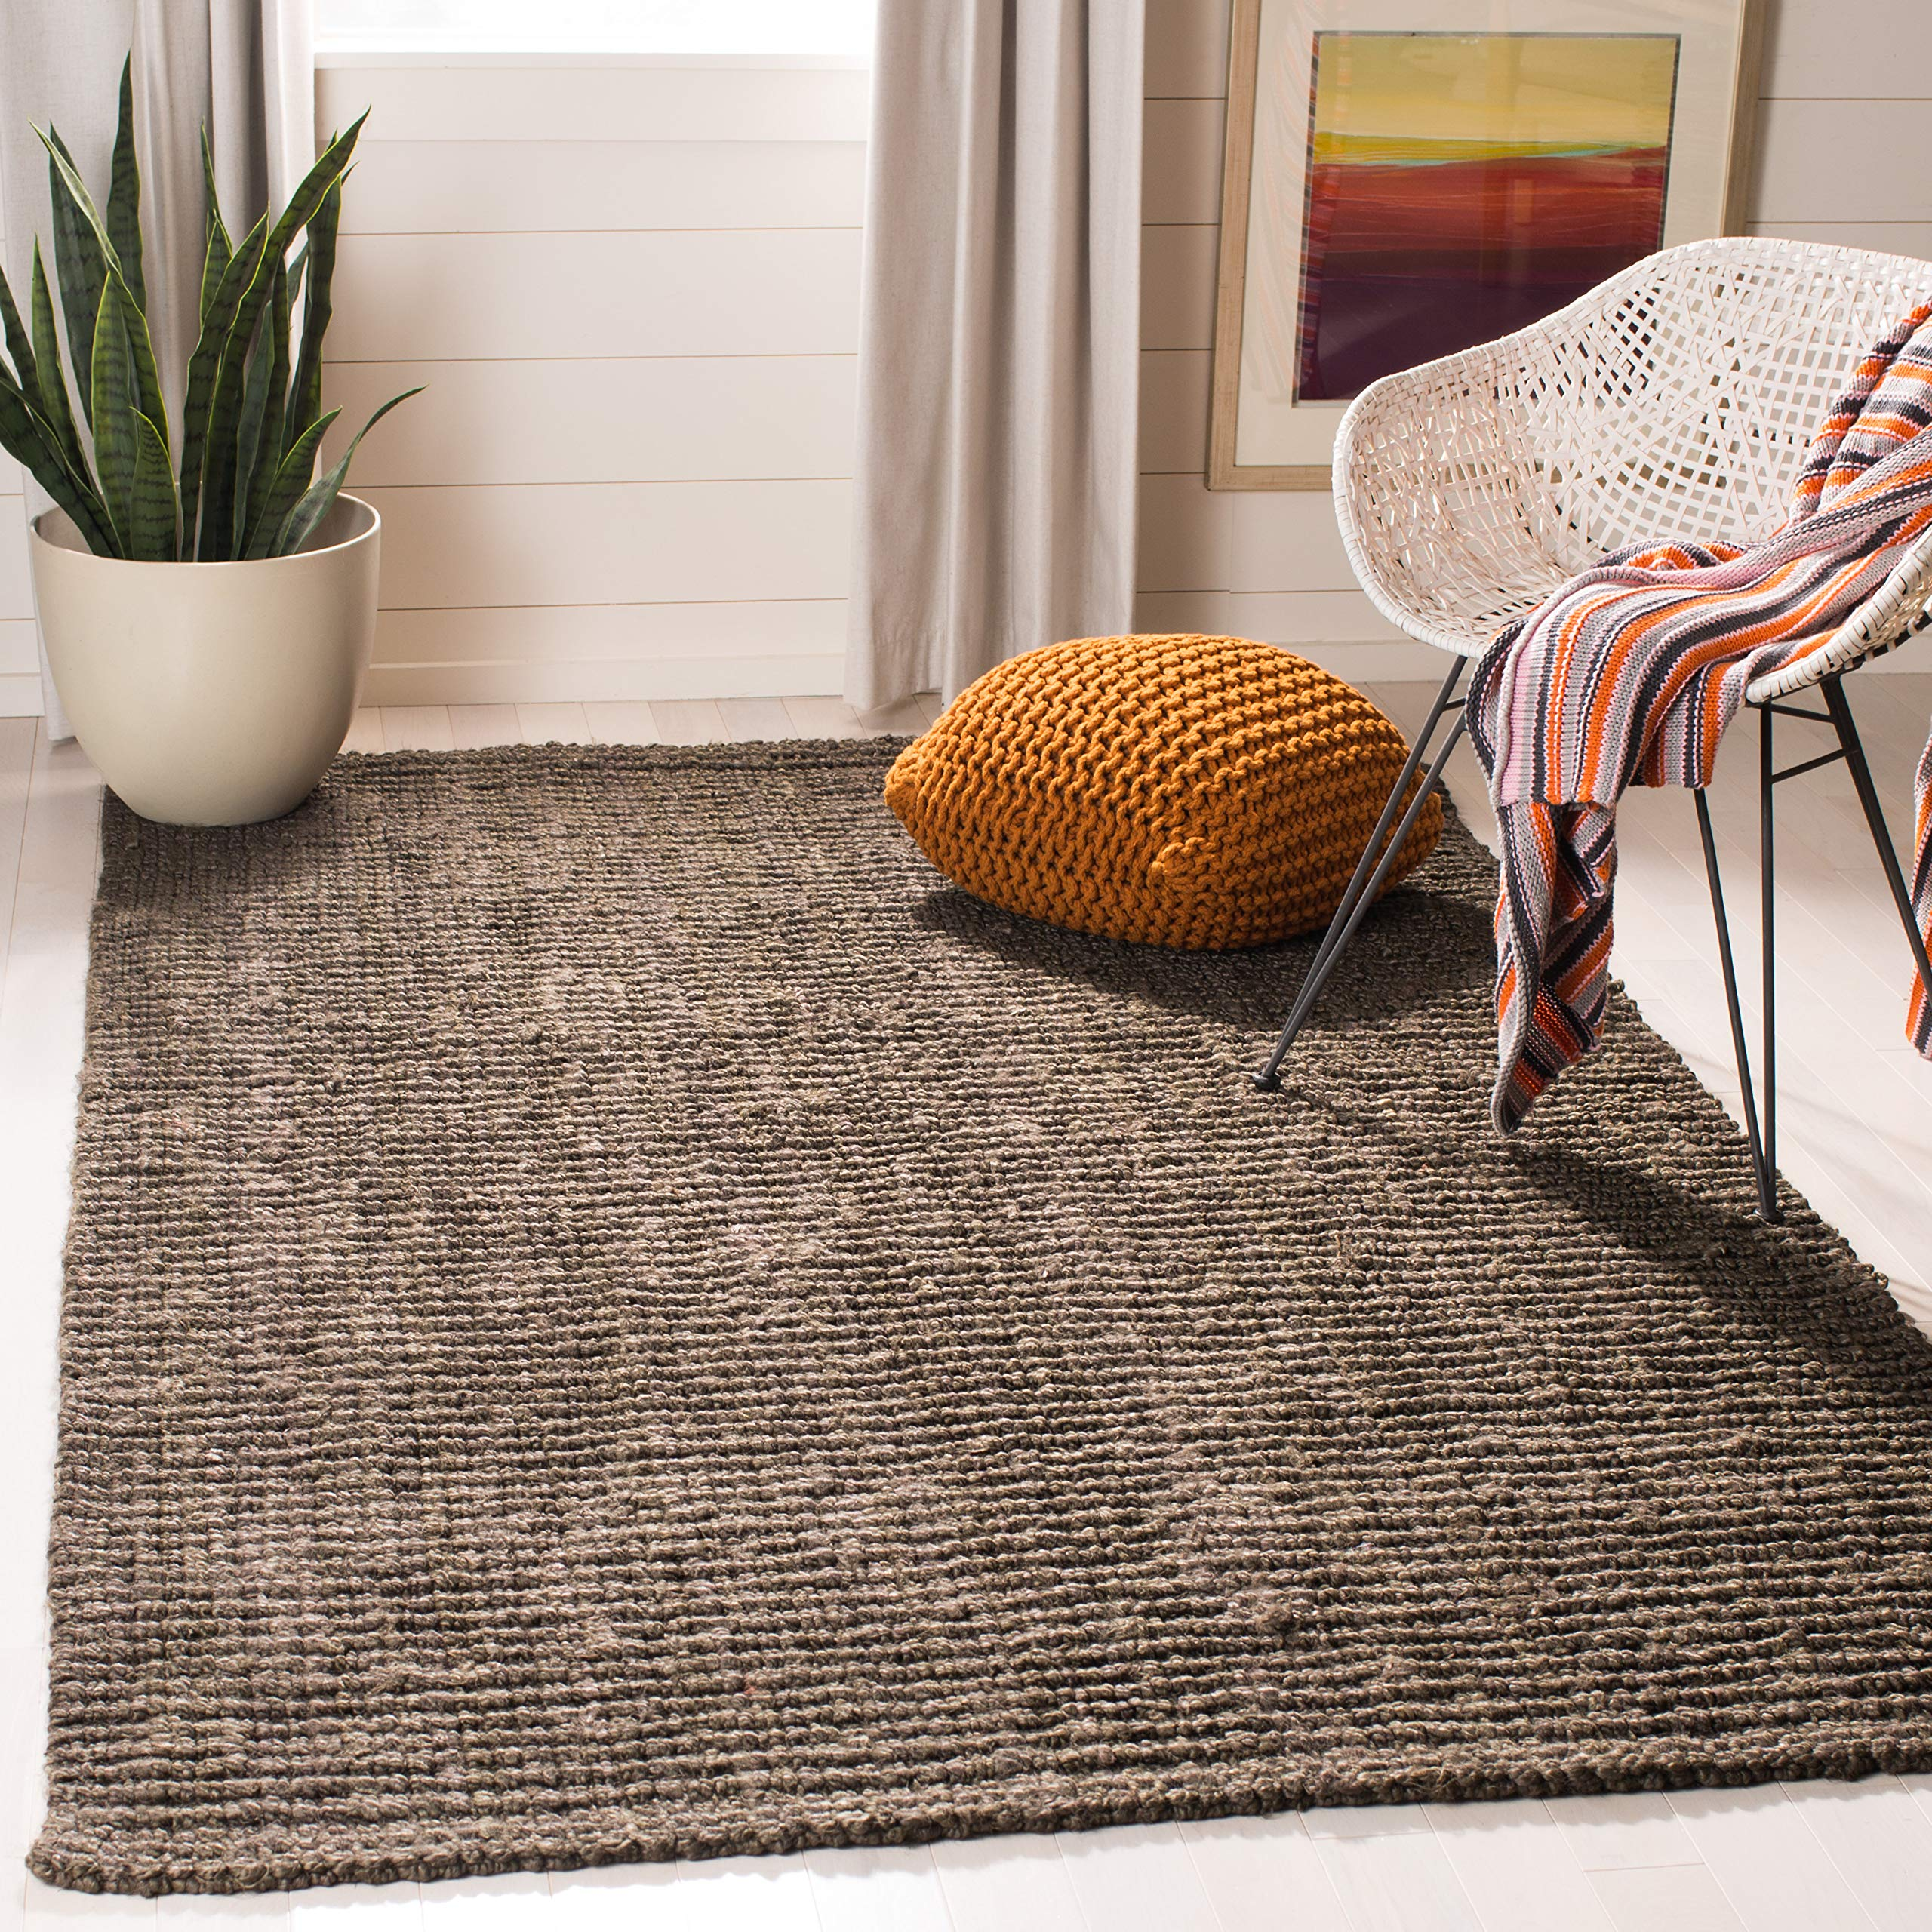 Safavieh Natural Fiber Collection NF447D Hand-woven Chunky Textured Jute Area Rug, 8' Square, Brown